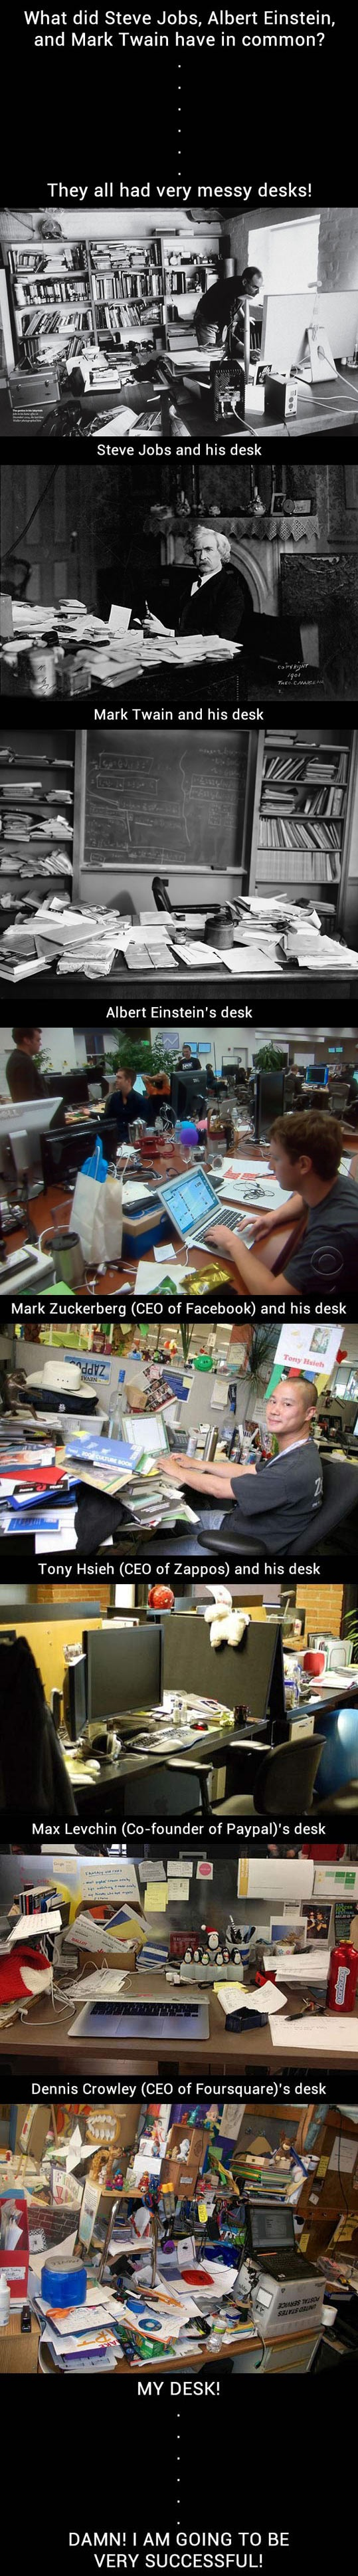 cool-messy-desks-Steve-Jobs-Einstein